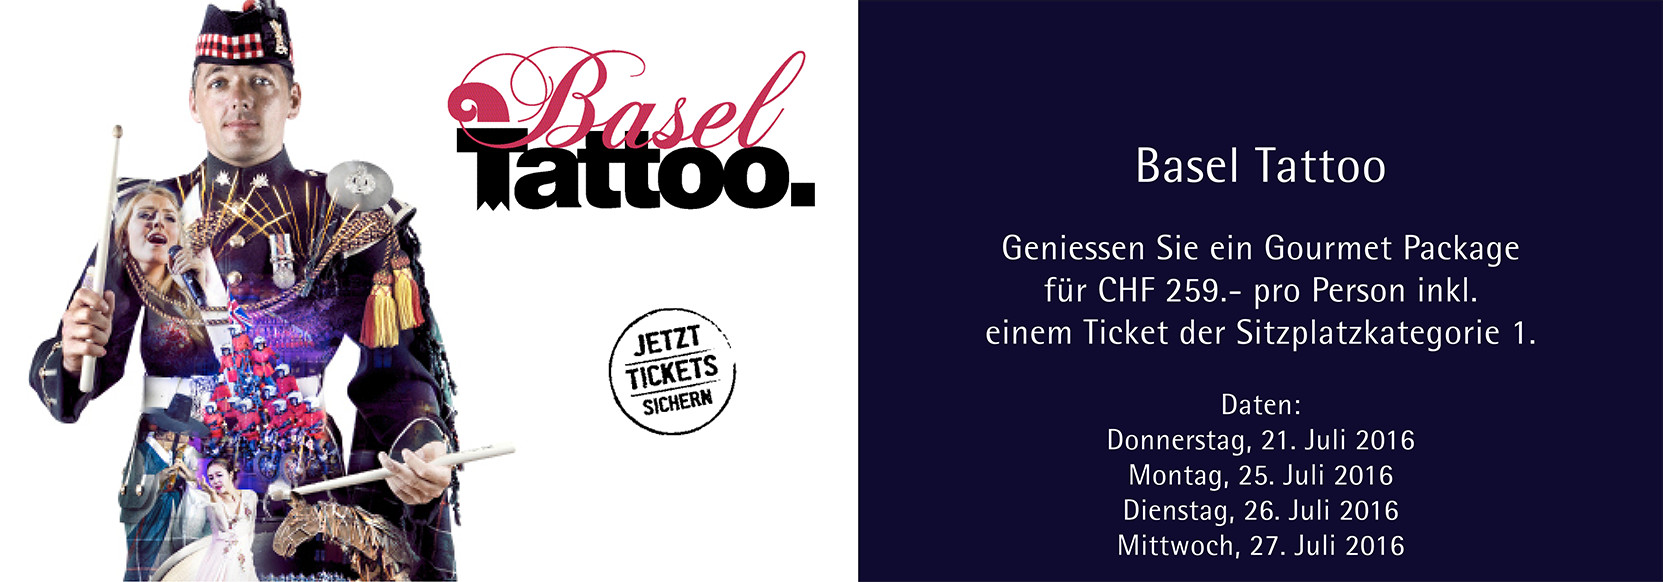 Basel Tattoo 2016